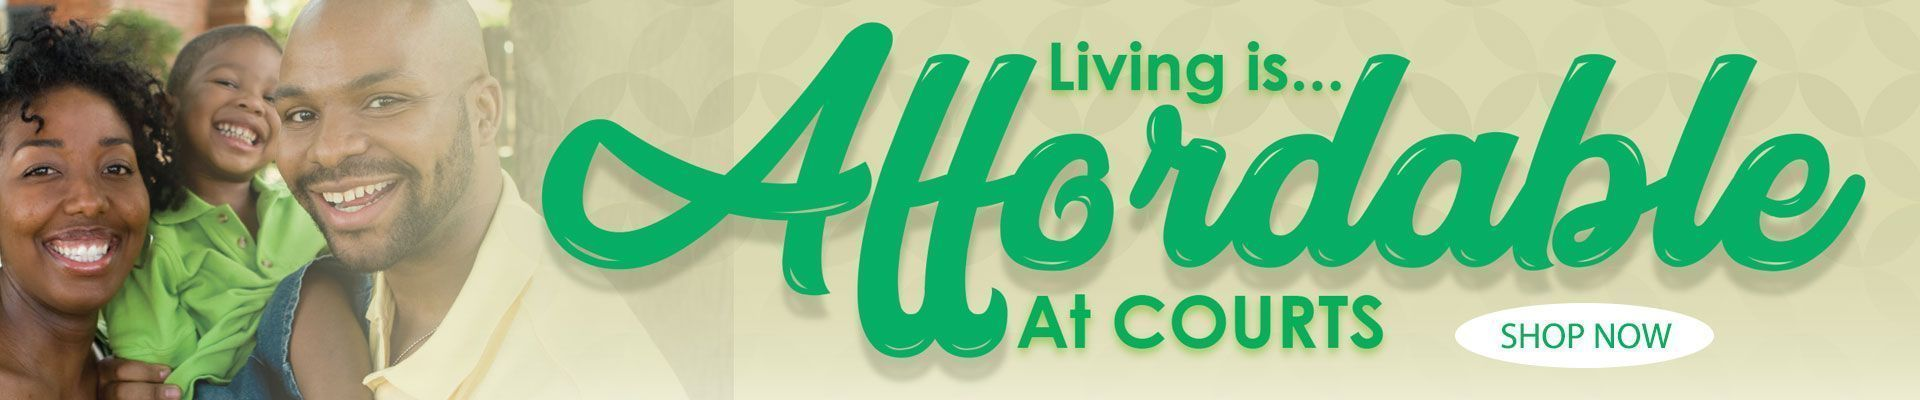 JA - Living is Affordable